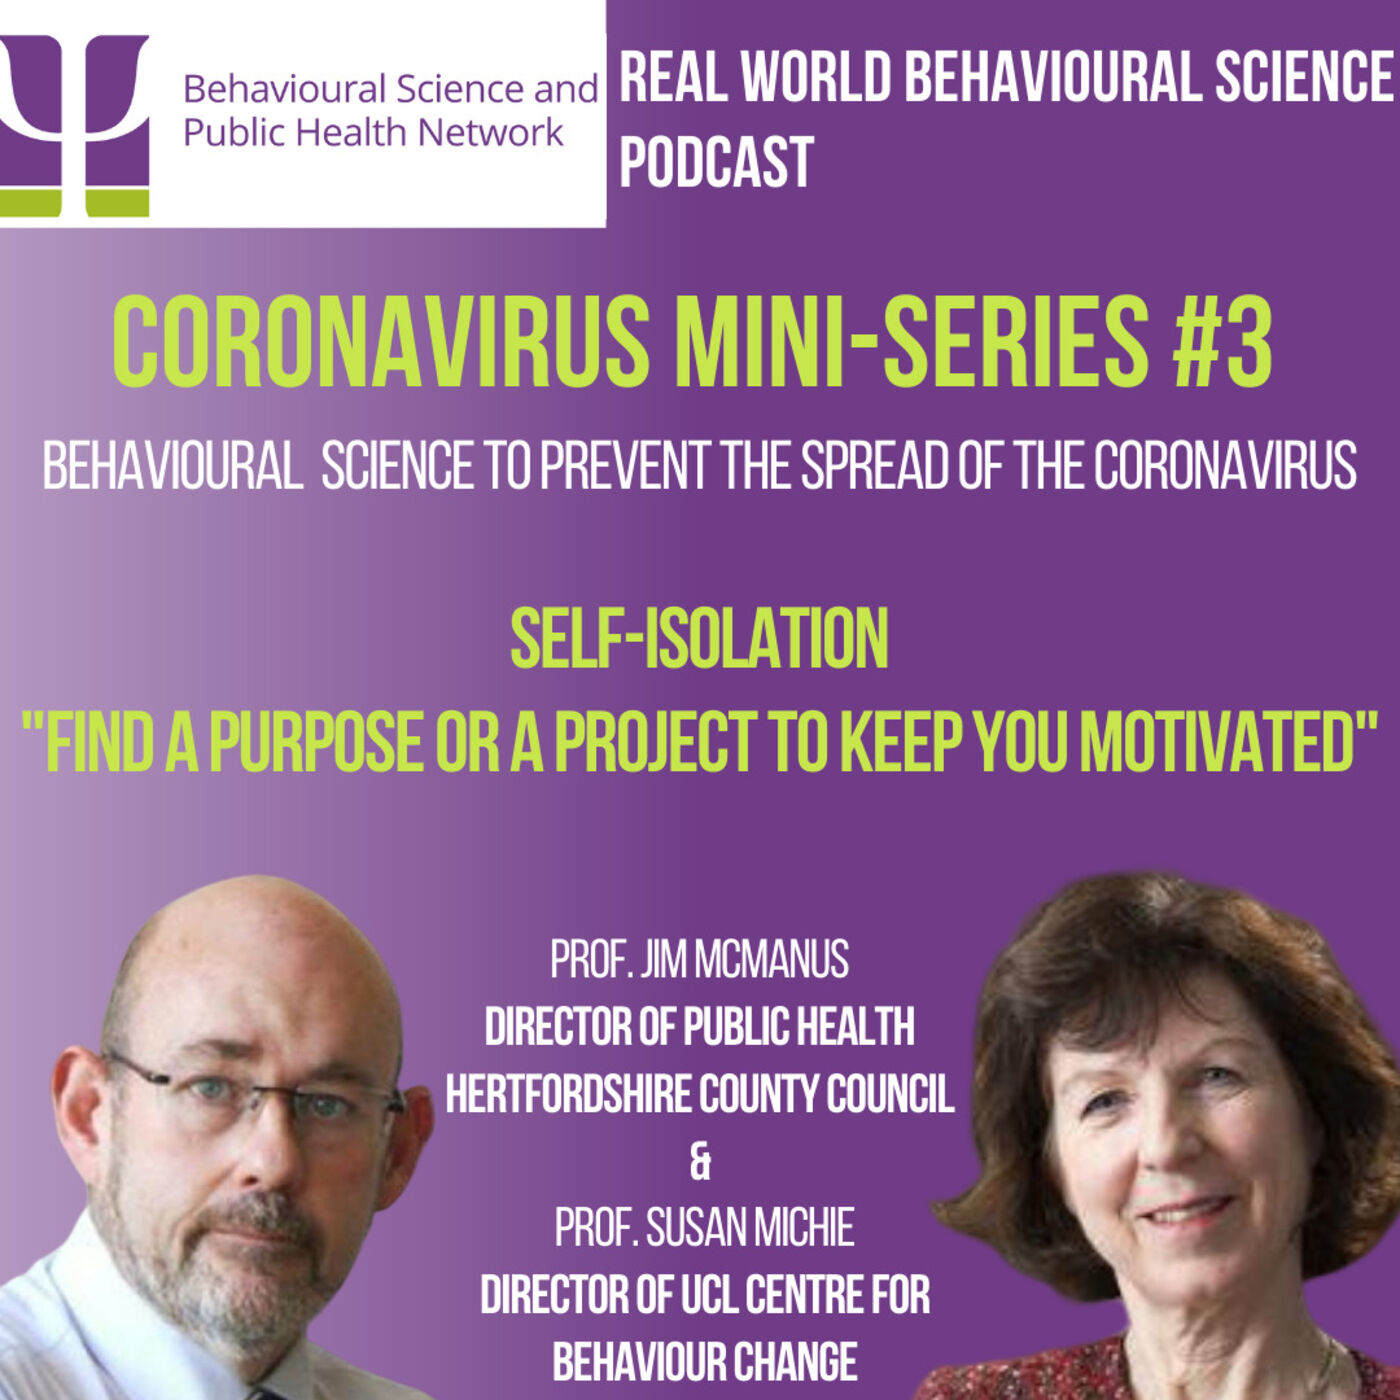 CORONAVIRUS Mini-Series #3 Self-Isolation - Prof. Susan Michie & Prof. Jim McManus